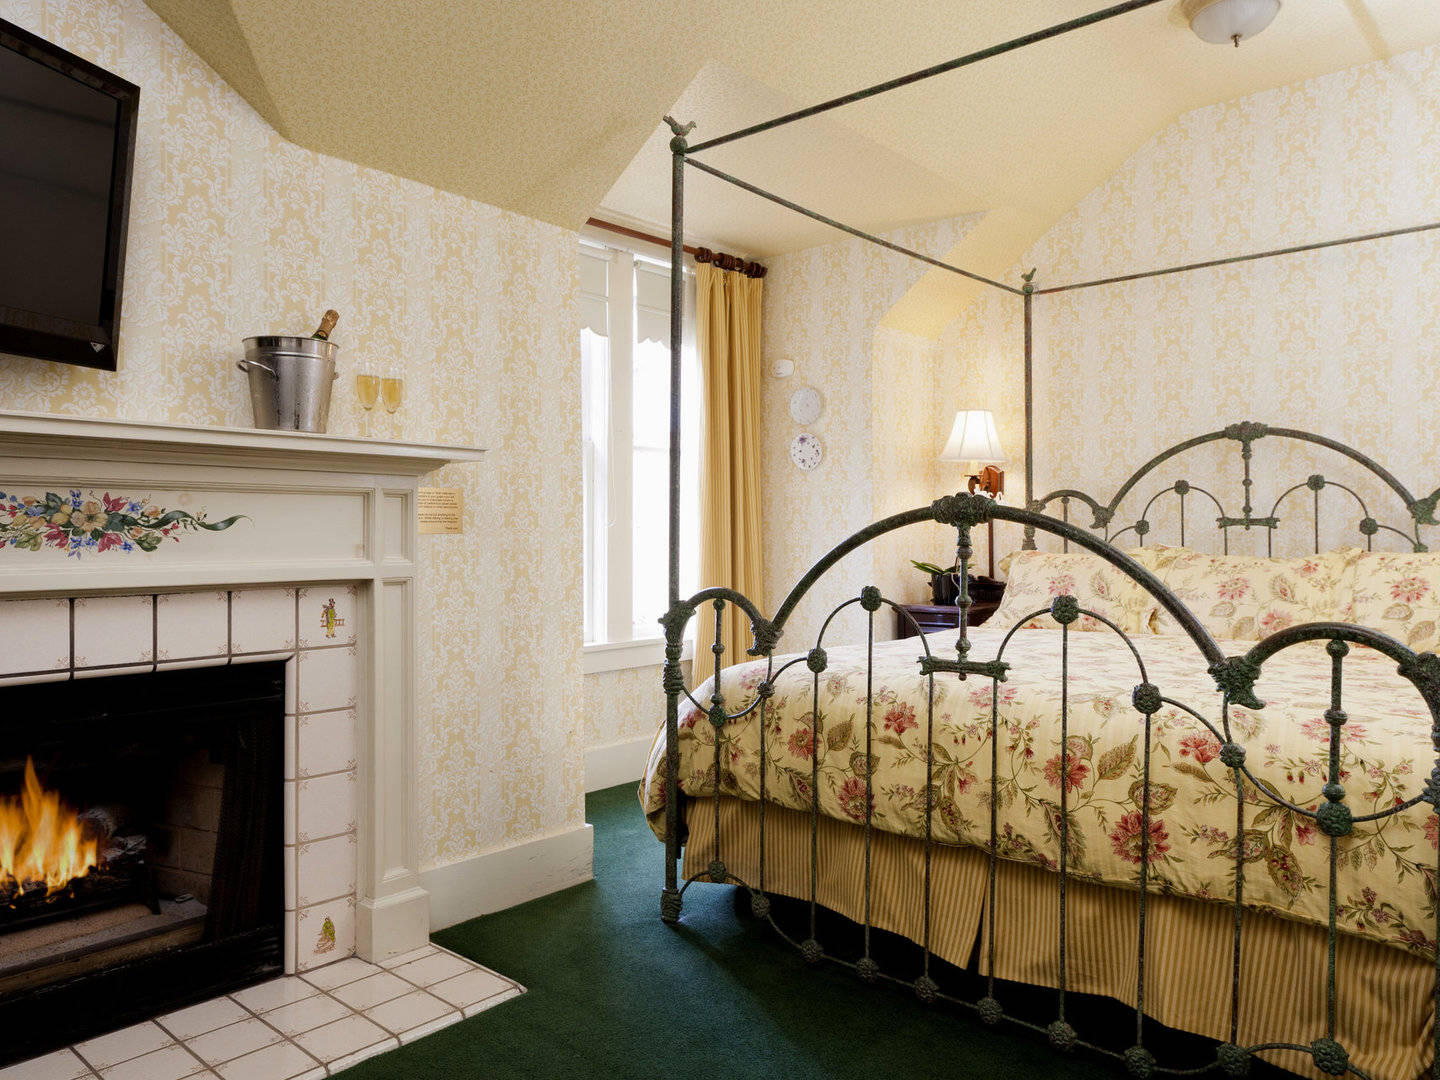 Pacific Grove Bed and Breakfast